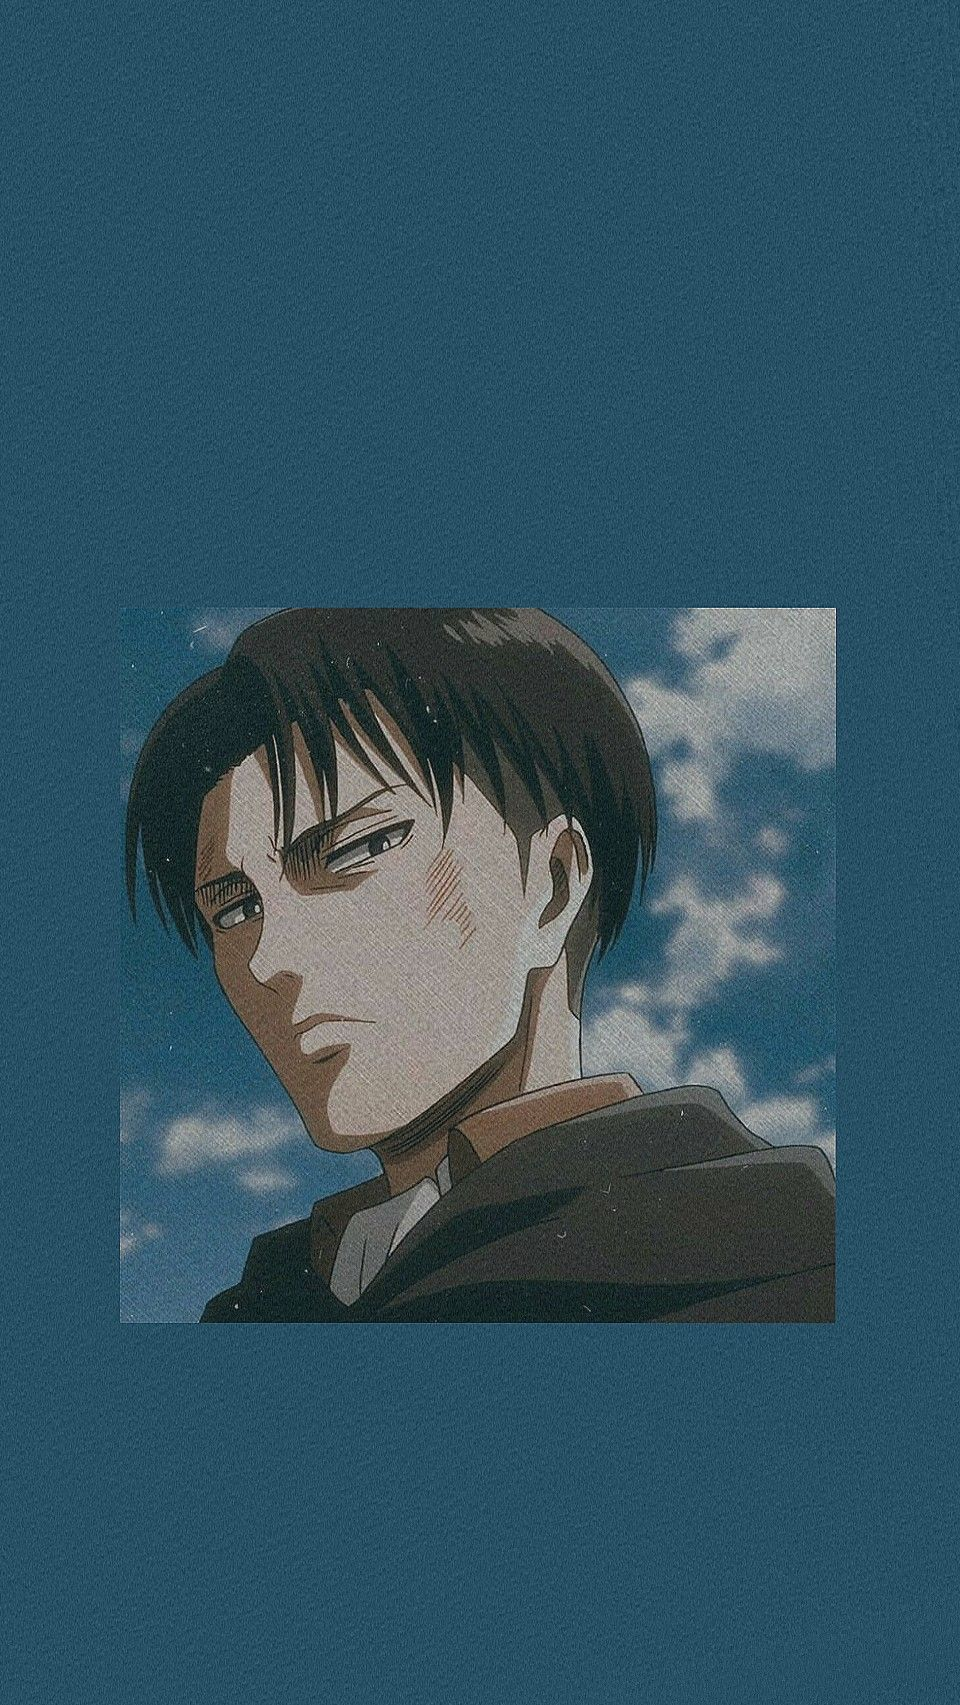 Attack On Titan Levi Wallpaper In 2020 Attack On Titan Anime Cute Anime Character Ghibli Artwork